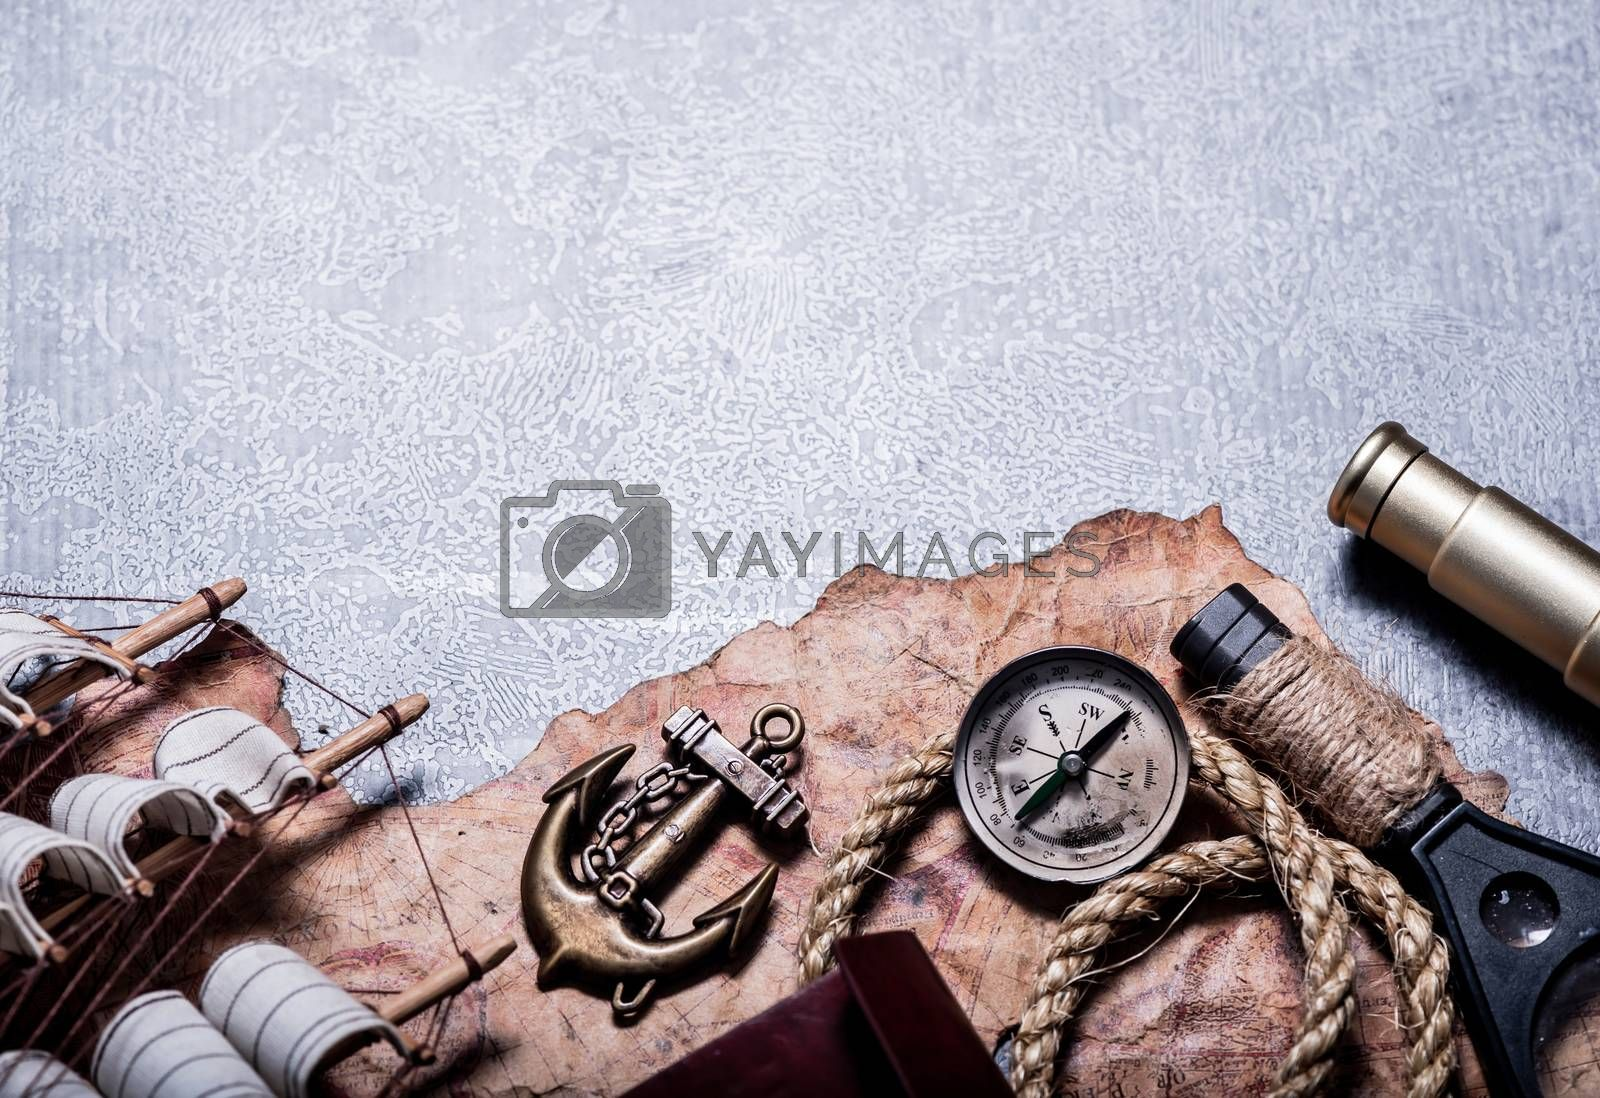 Columbus Day. Pirates and treasure with vintage world map and discovery of old equipment. Exploration and investigation with copy space on dark background. by graphixchon